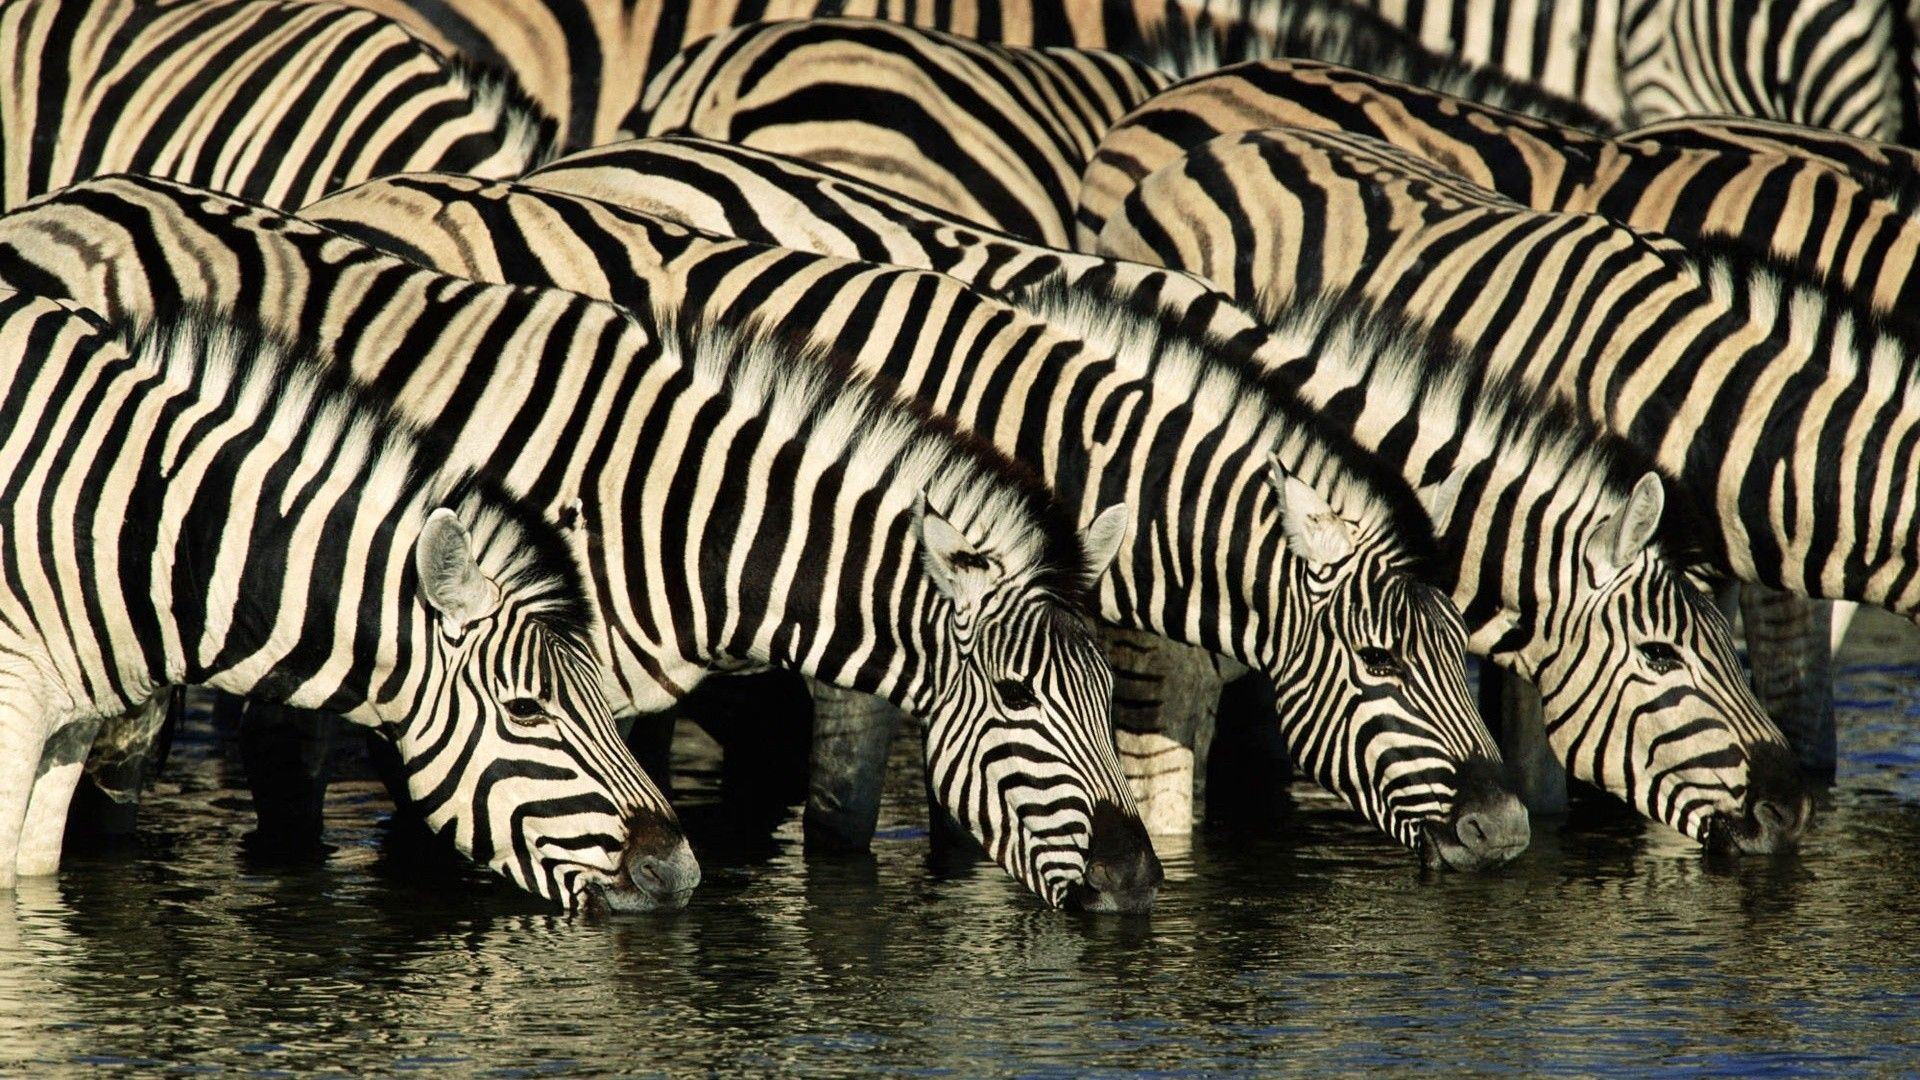 Zebra Wallpapers, Pictures, Image